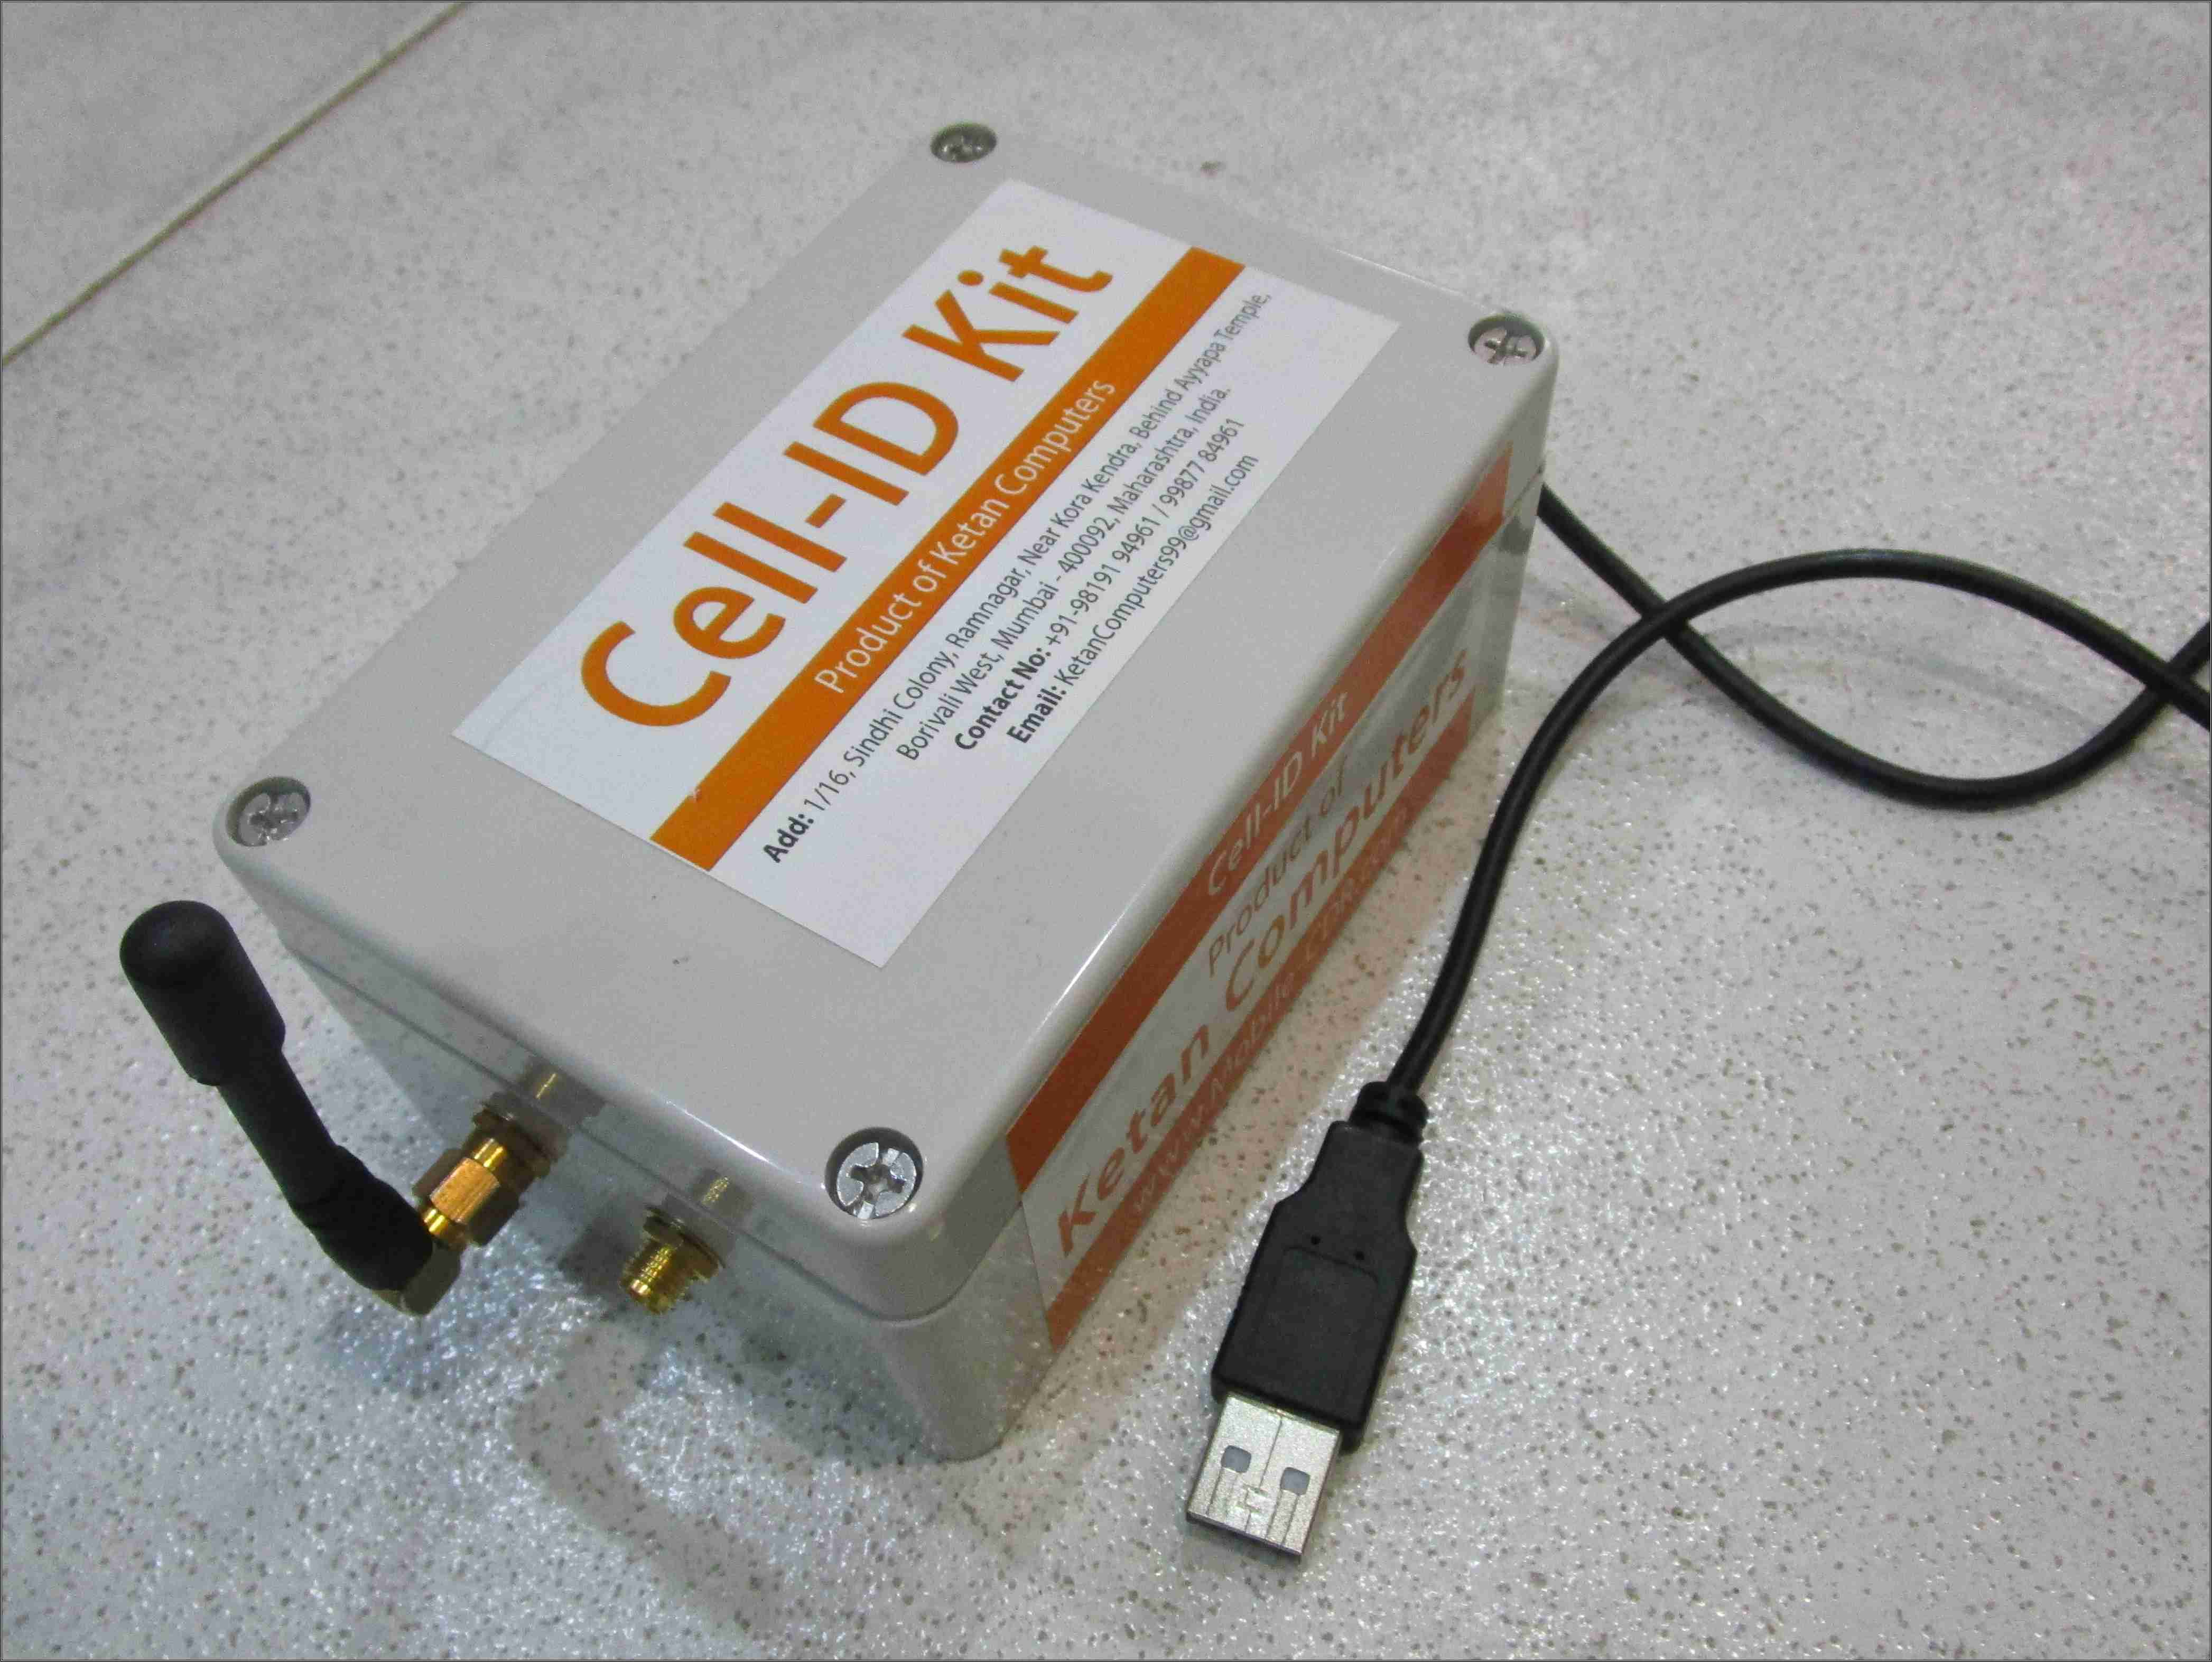 Cell ID Tool Kit | CDR Analysis & Investigation